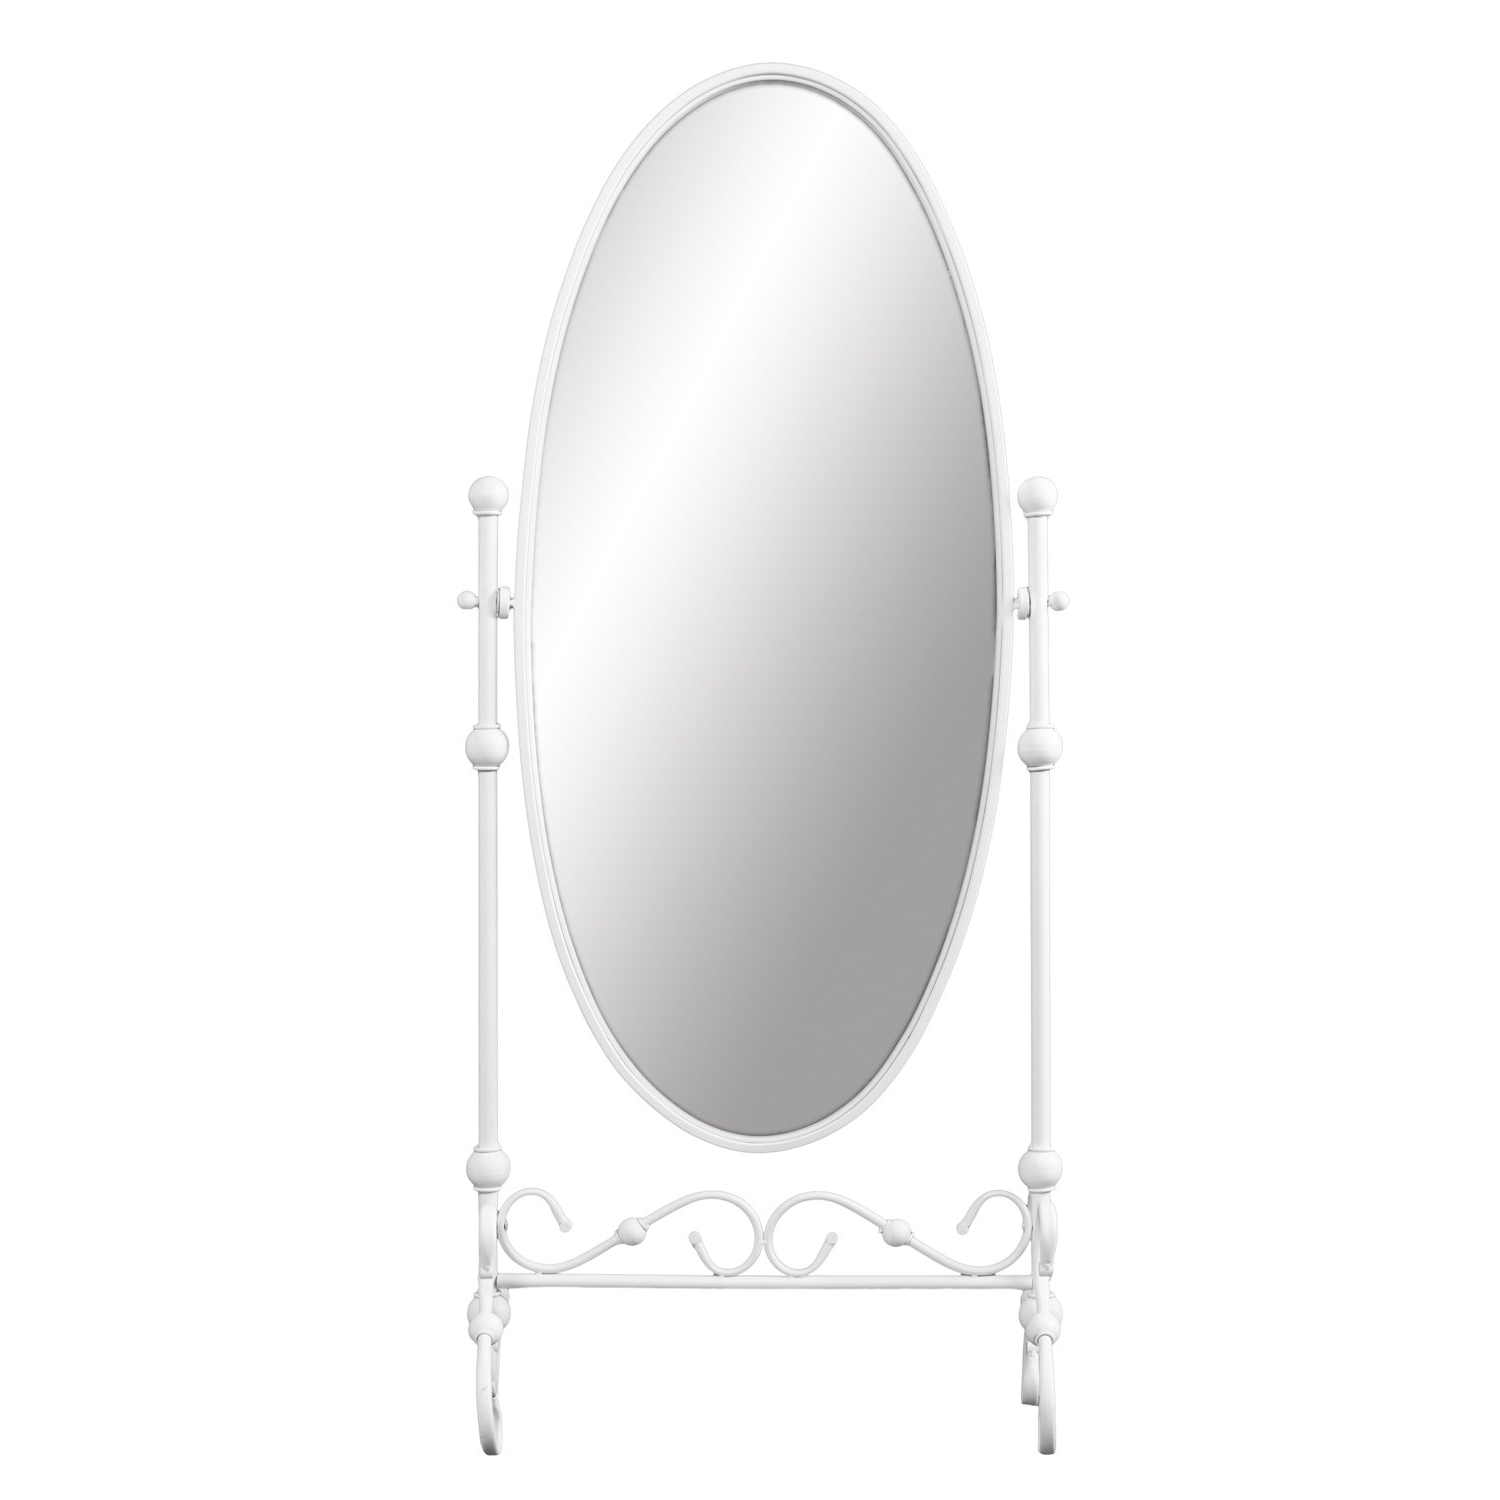 Full Length Oval Wall Mirrors Intended For Well Known Amazon: Furniture Hotspot Oval Cheval Mirror – White (View 13 of 20)